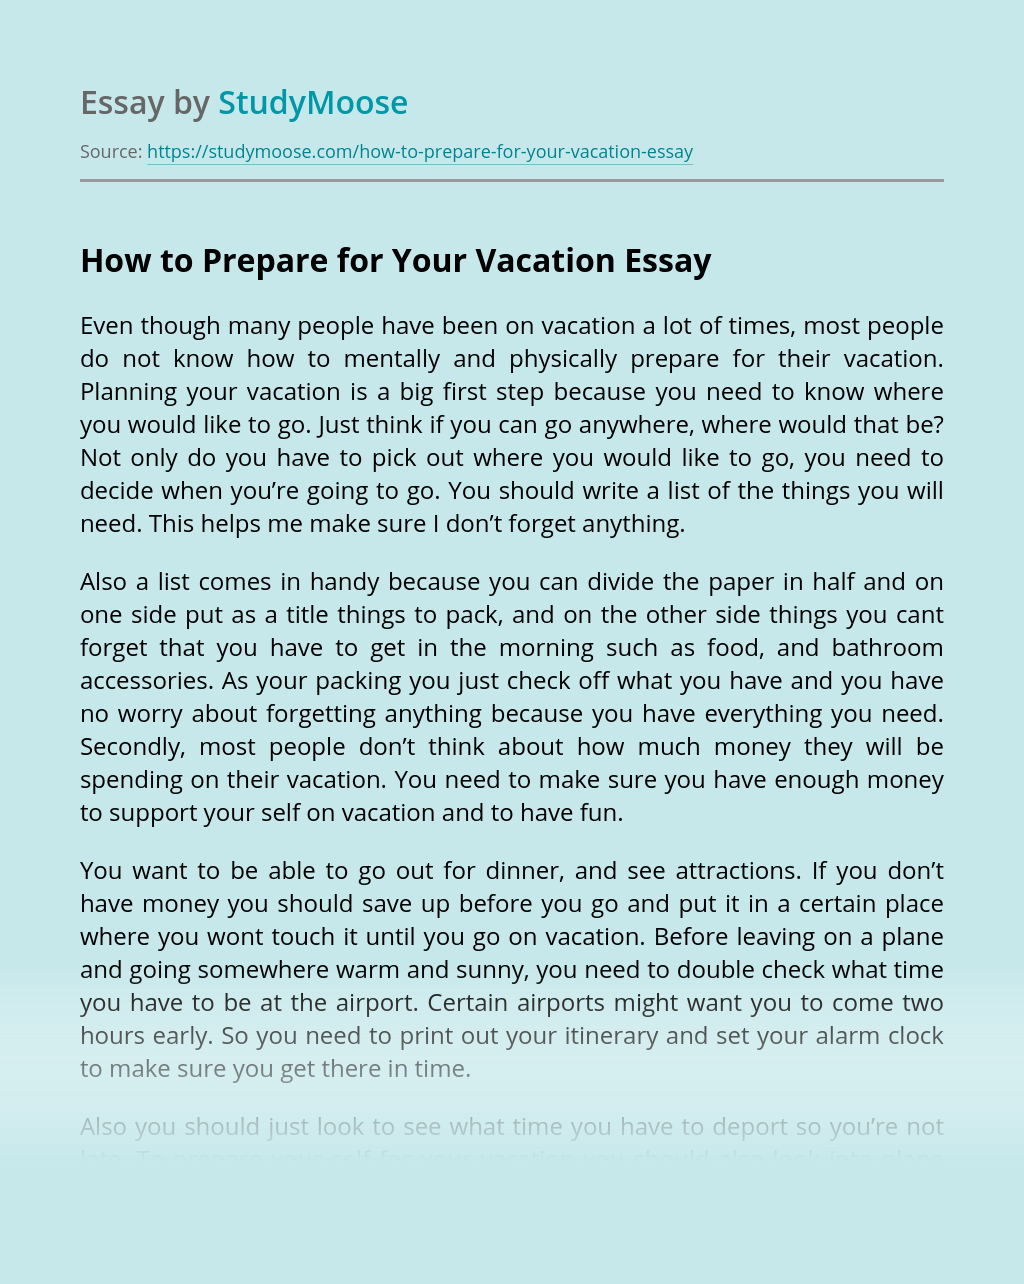 How to Prepare for Your Vacation